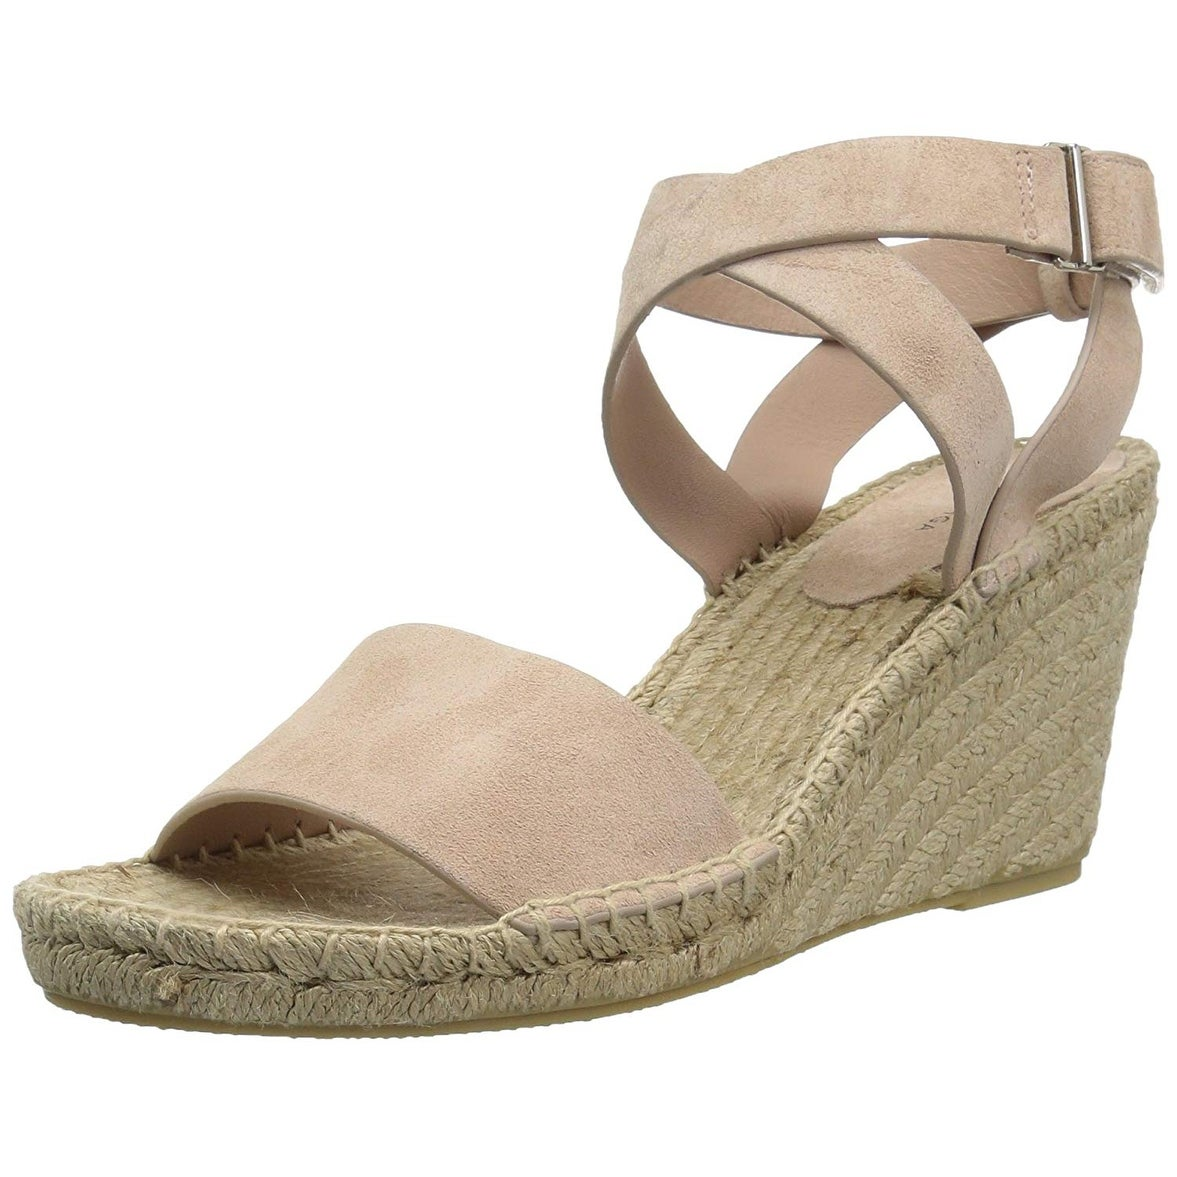 Espadrille Wedge Sandal Women's Nevada Via Spiga wOynN0vm8